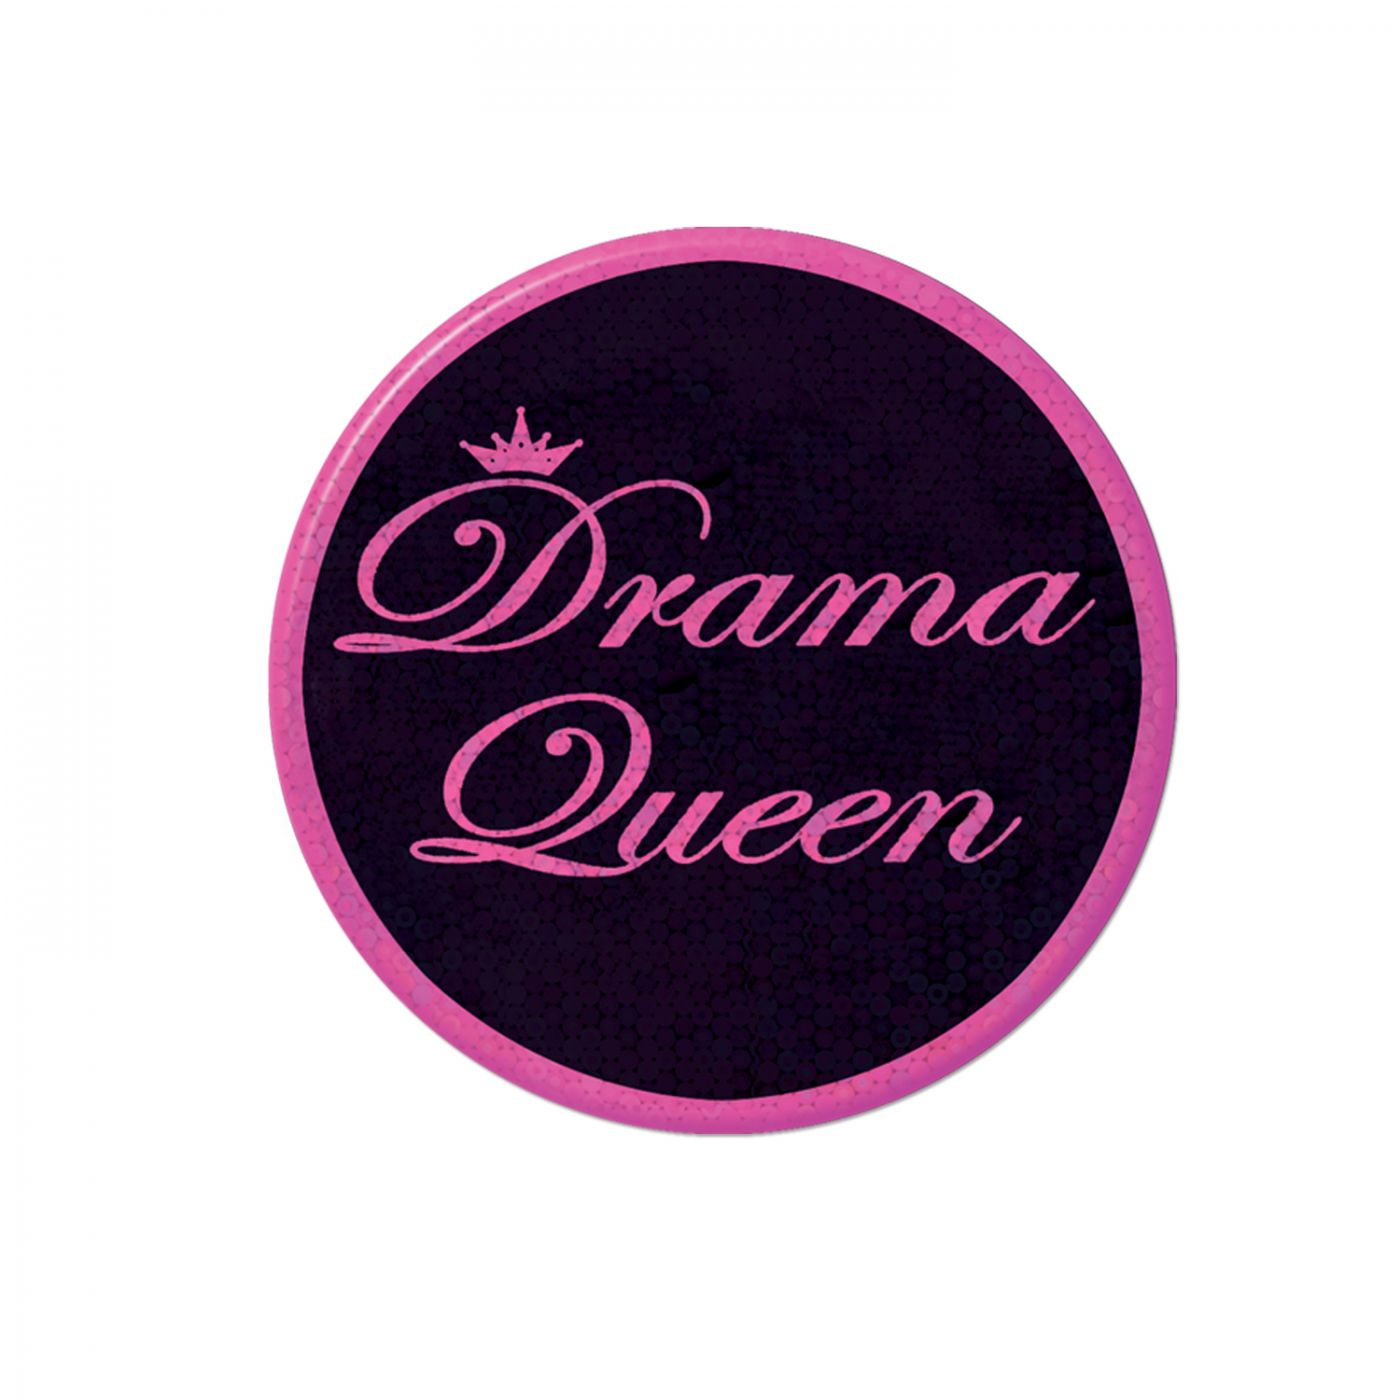 Drama Queen Button image